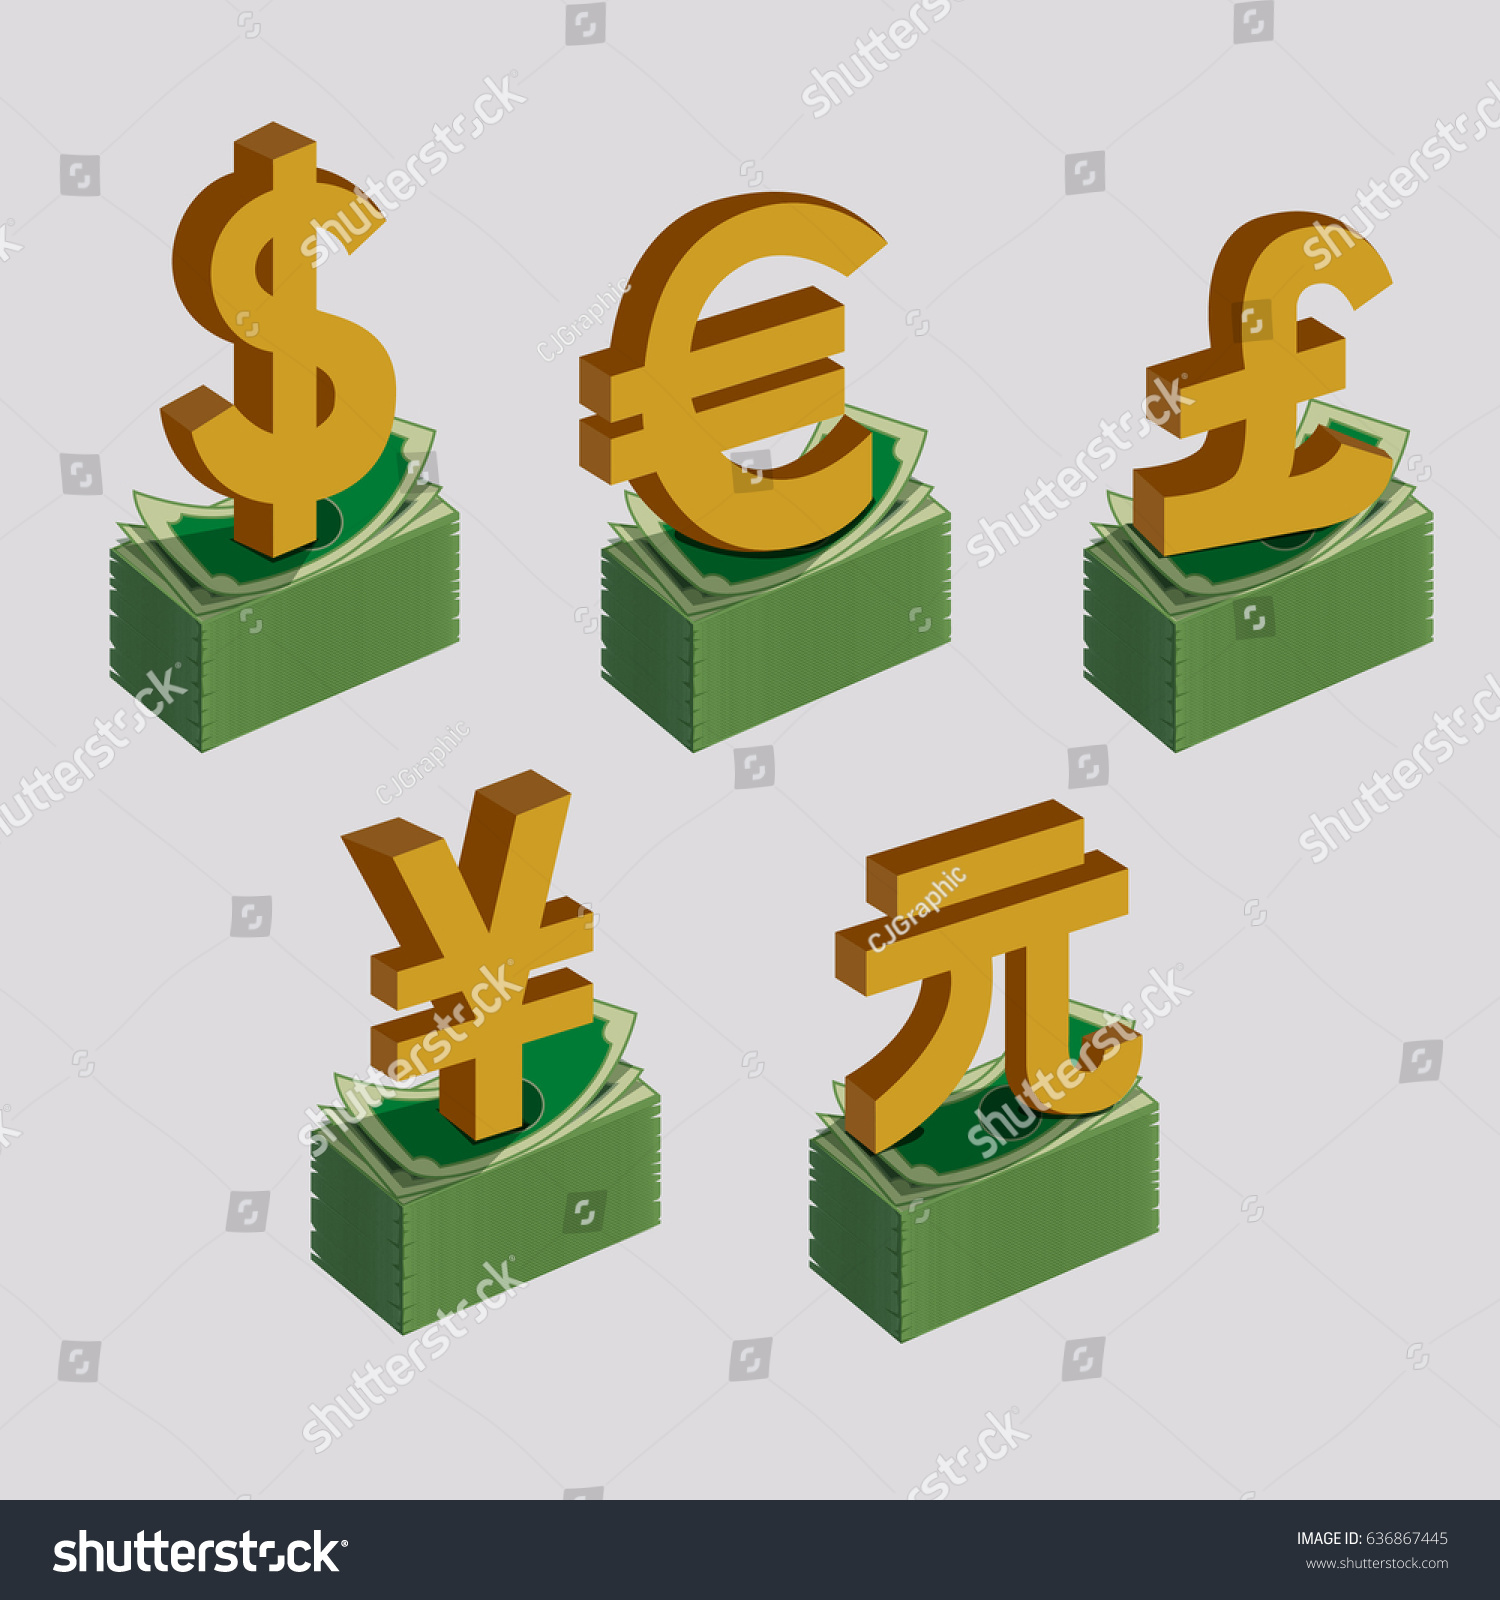 Currency symbols signs dollar euro pound stock vector 636867445 currency symbols signs of dollar euro pound yen and yuan sterling buycottarizona Choice Image